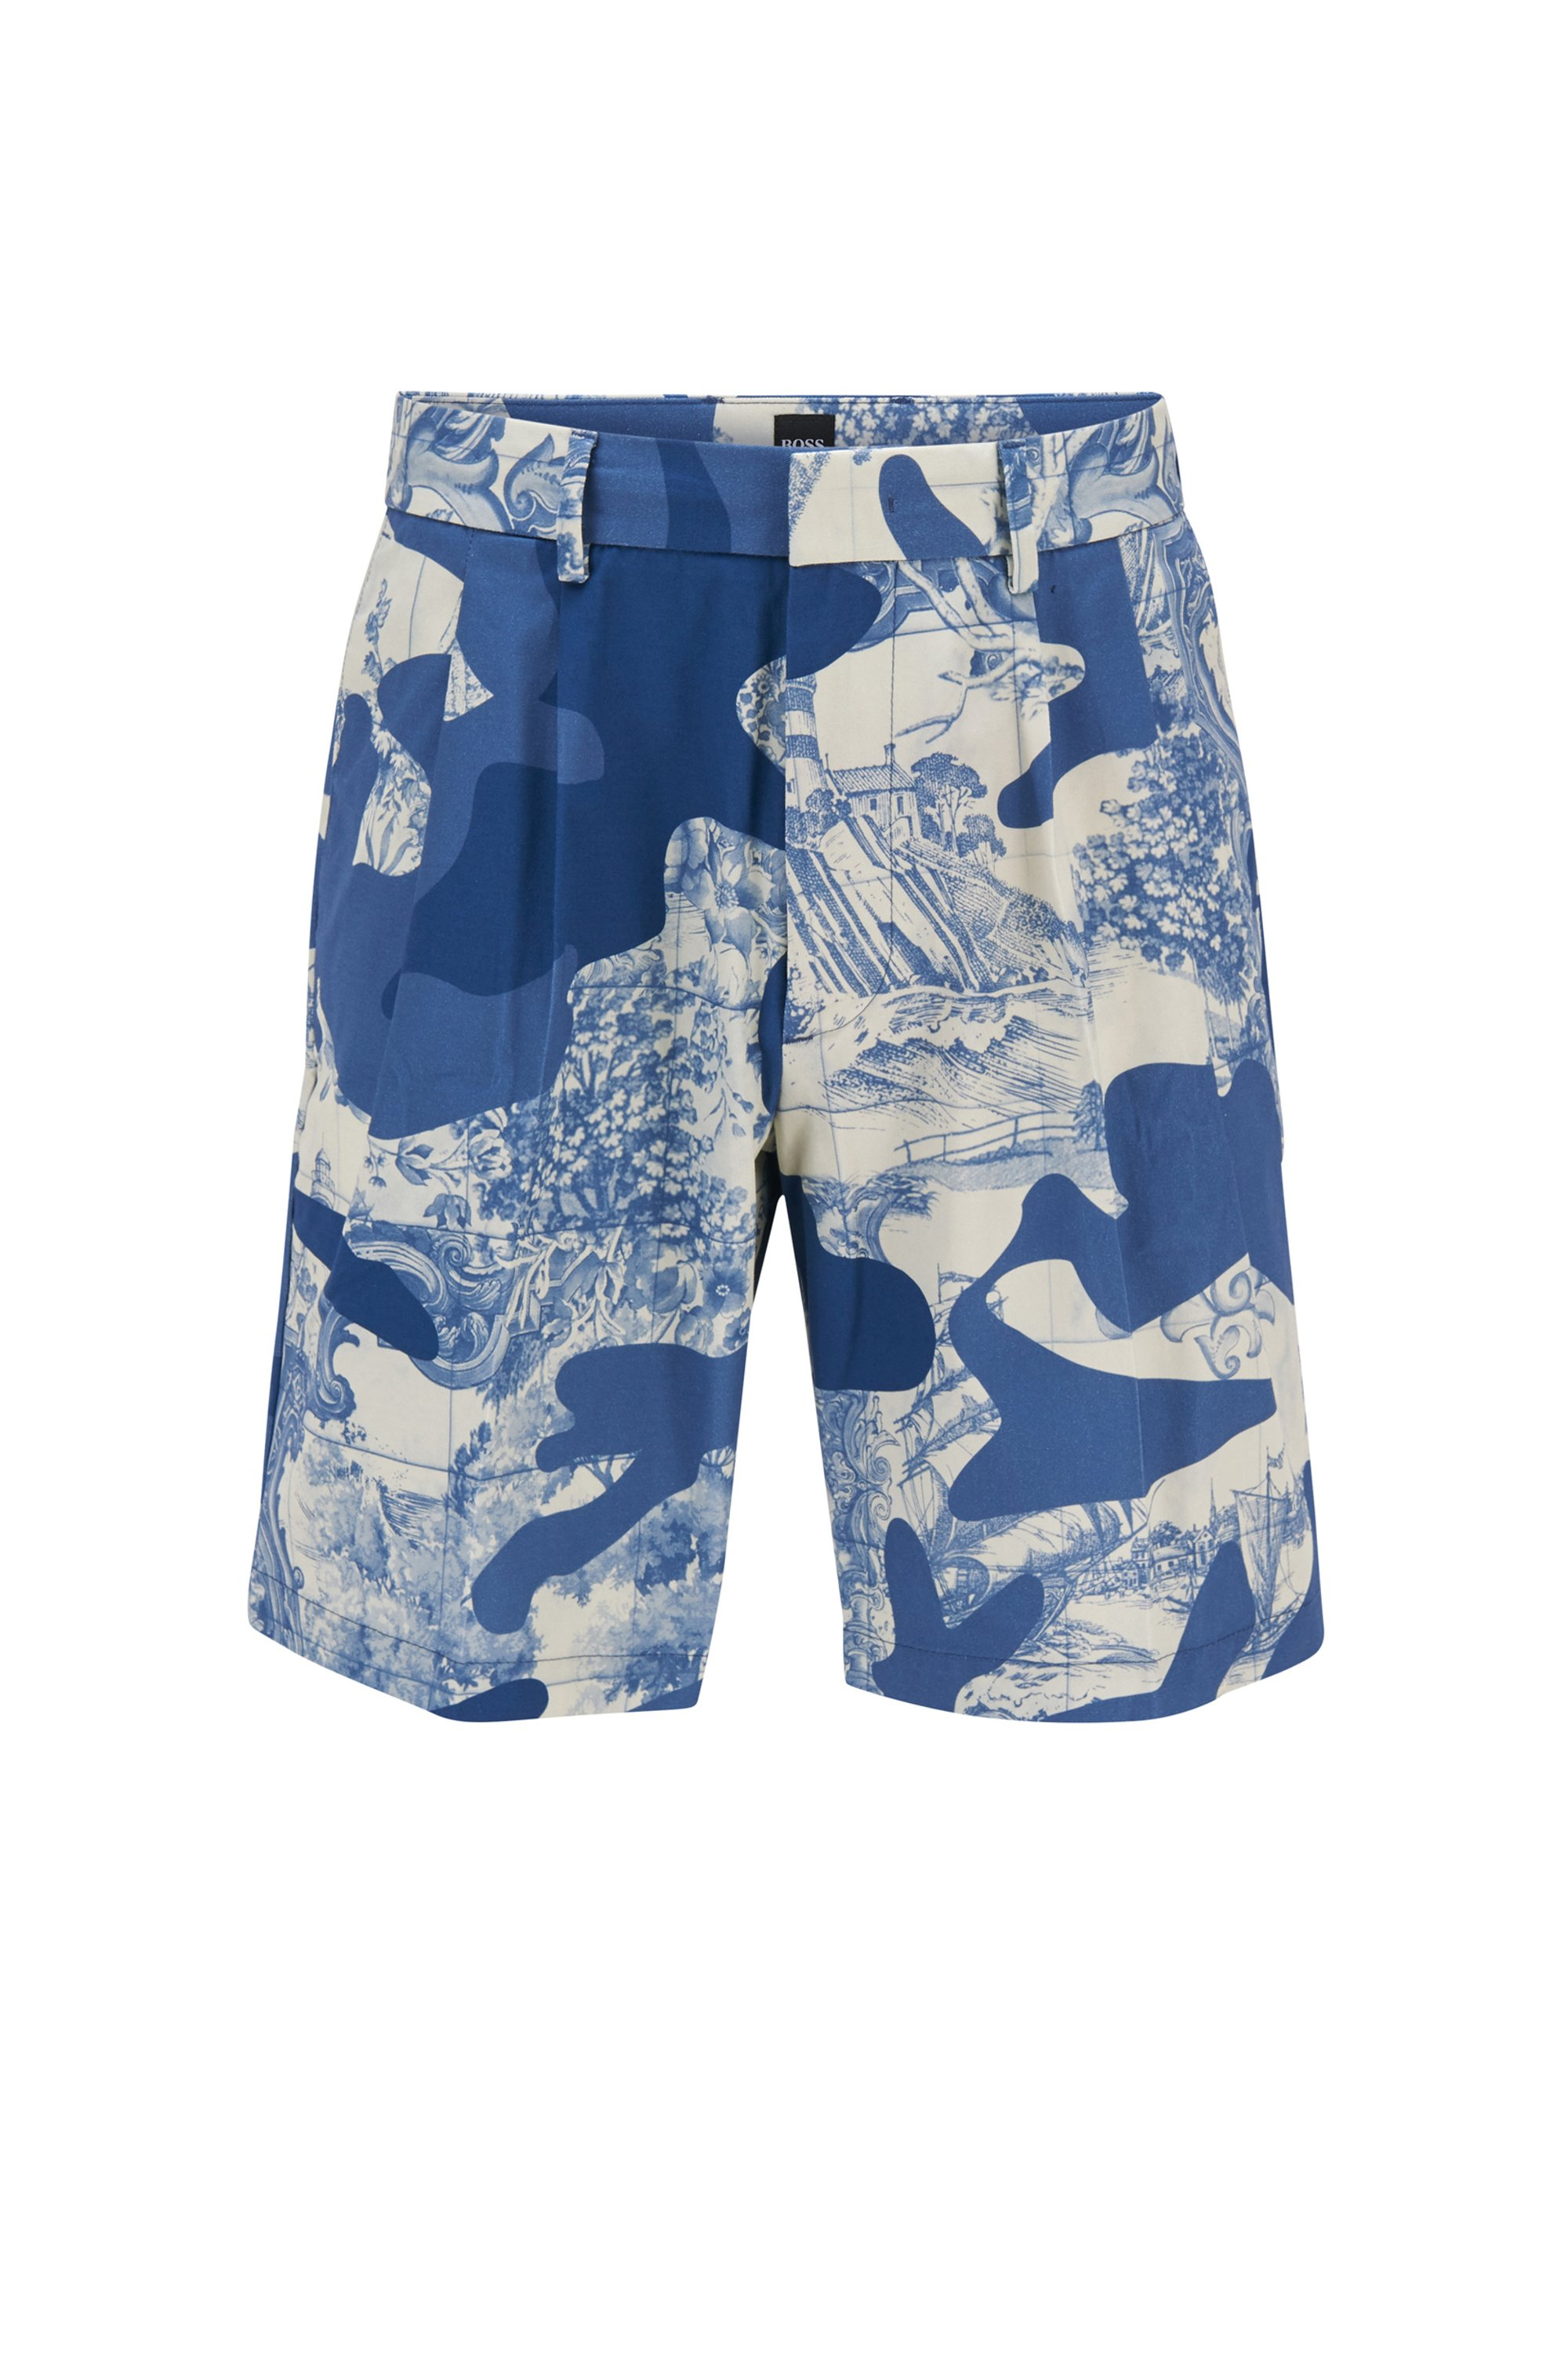 Regular-Fit Shorts aus Stretch-Baumwolle mit saisonalem Print, Blau gemustert